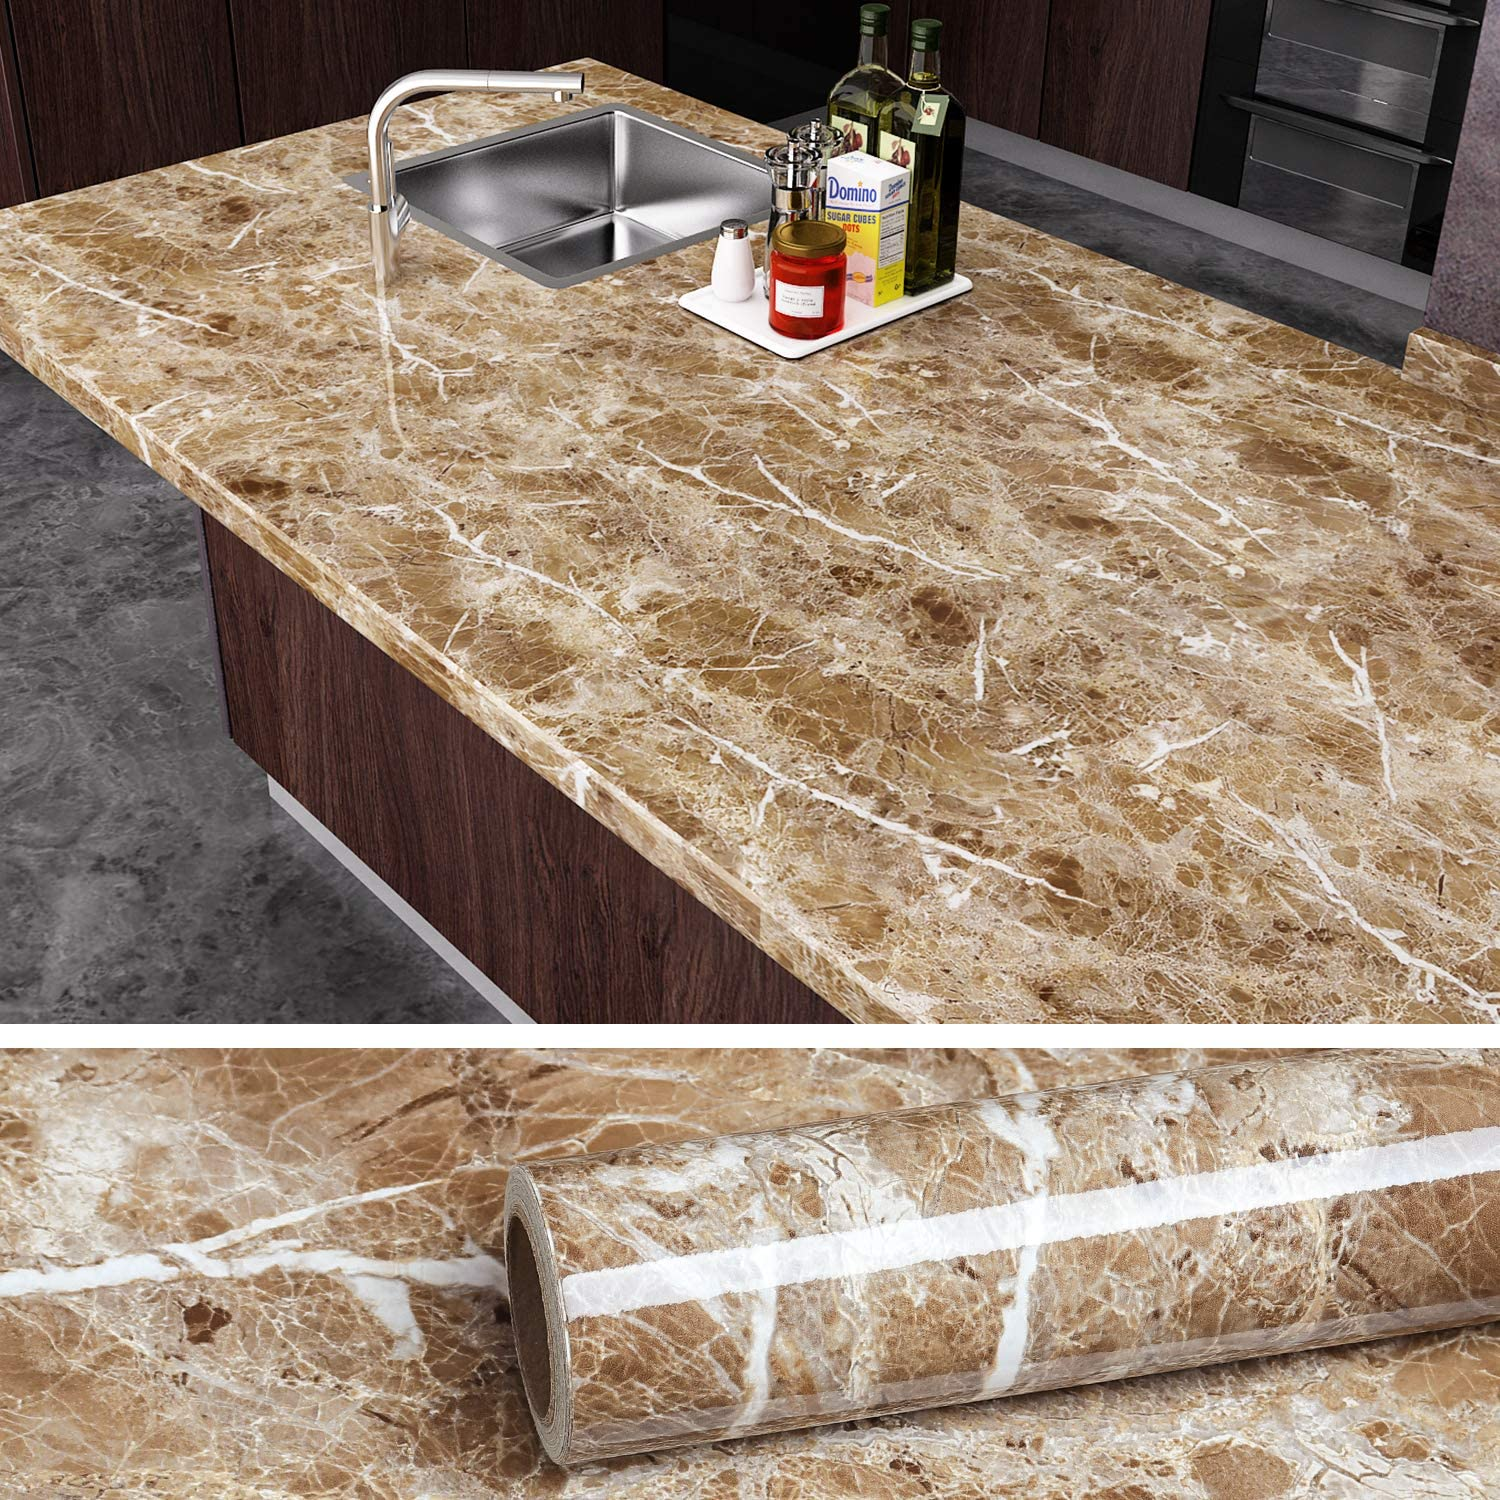 "VEELIKE Brown Marble Contact Paper Peel and Stick Countertop Granite Wallpaper for Kitchen Cabinet Vinyl Waterproof Self Adhesive Removable Wall Paper Decorative for Home Decor 15.8""x118"""